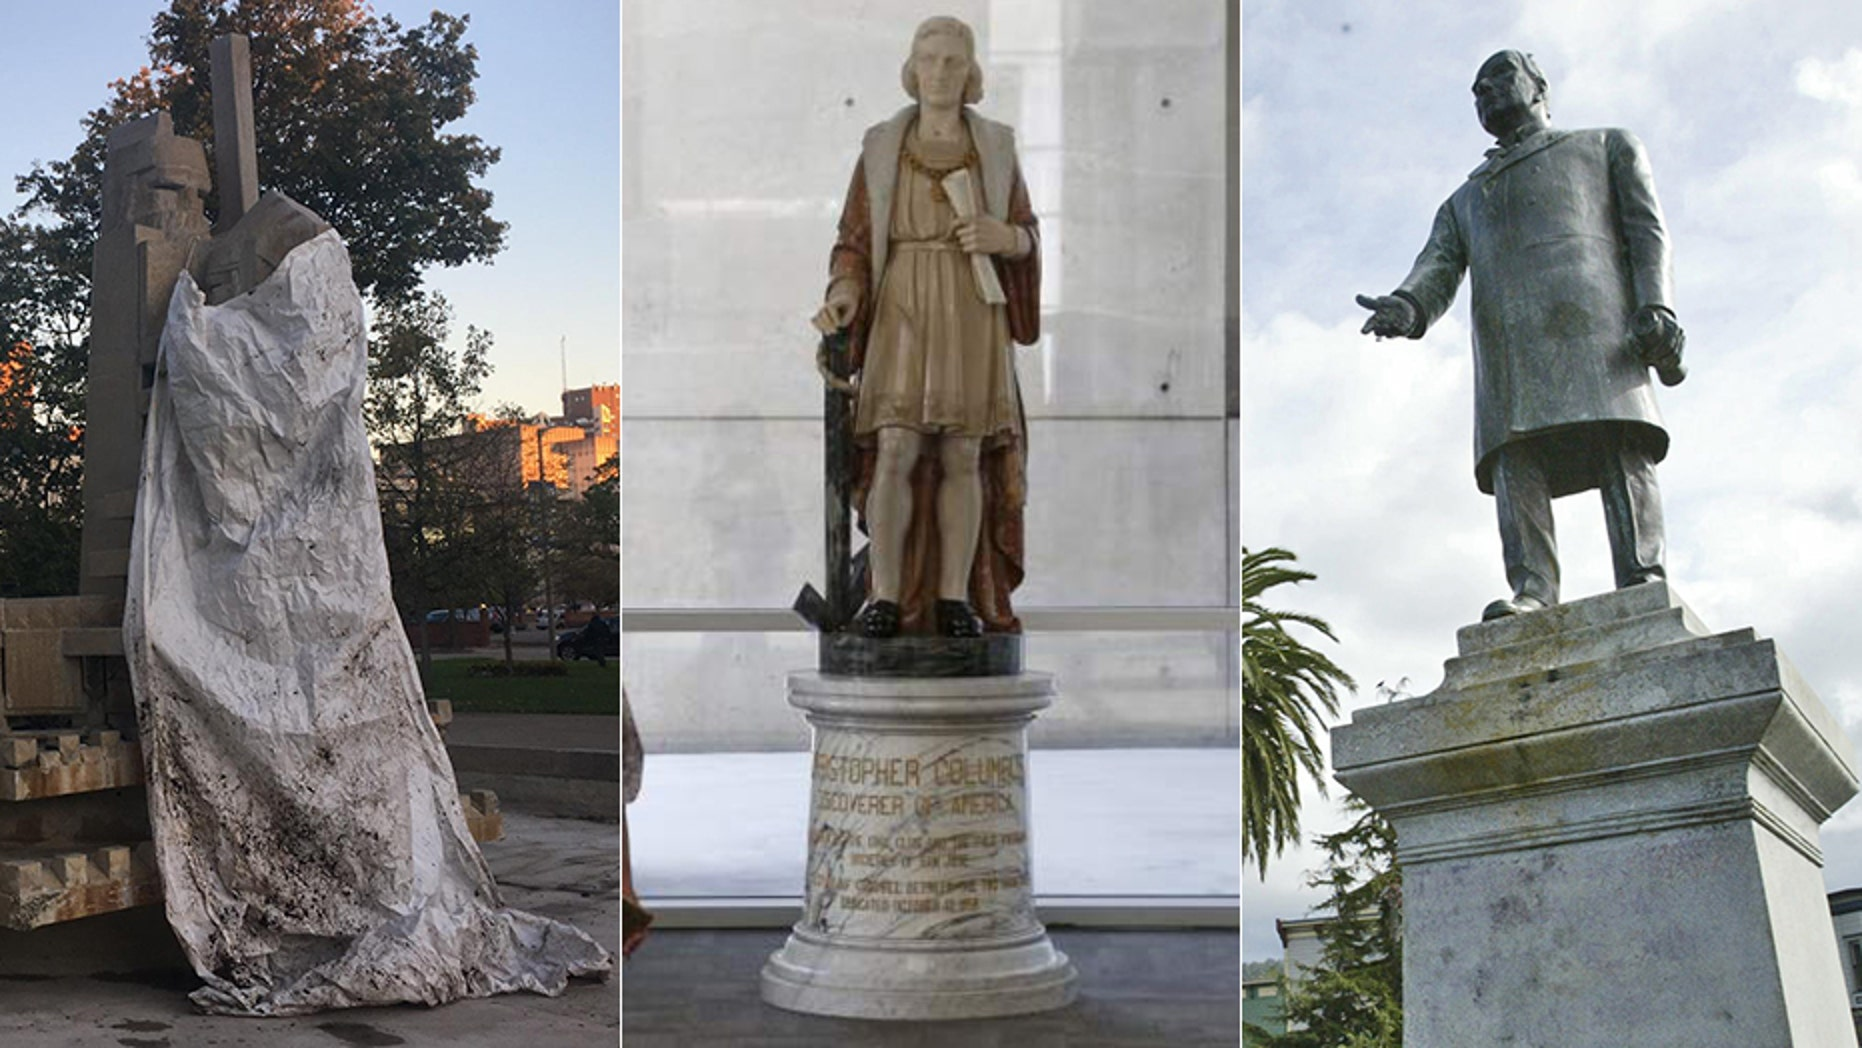 Arcata, Calif., is poised to remove its statue of William McKinley, right, amid outcry over the president's treatment of Native Americans. San Jose removed a statue of Christopher Columbus, center, from its city hall, while Kalamazoo, Mich., vowed to remove a statue of a Native American kneeling before a pioneer, left.